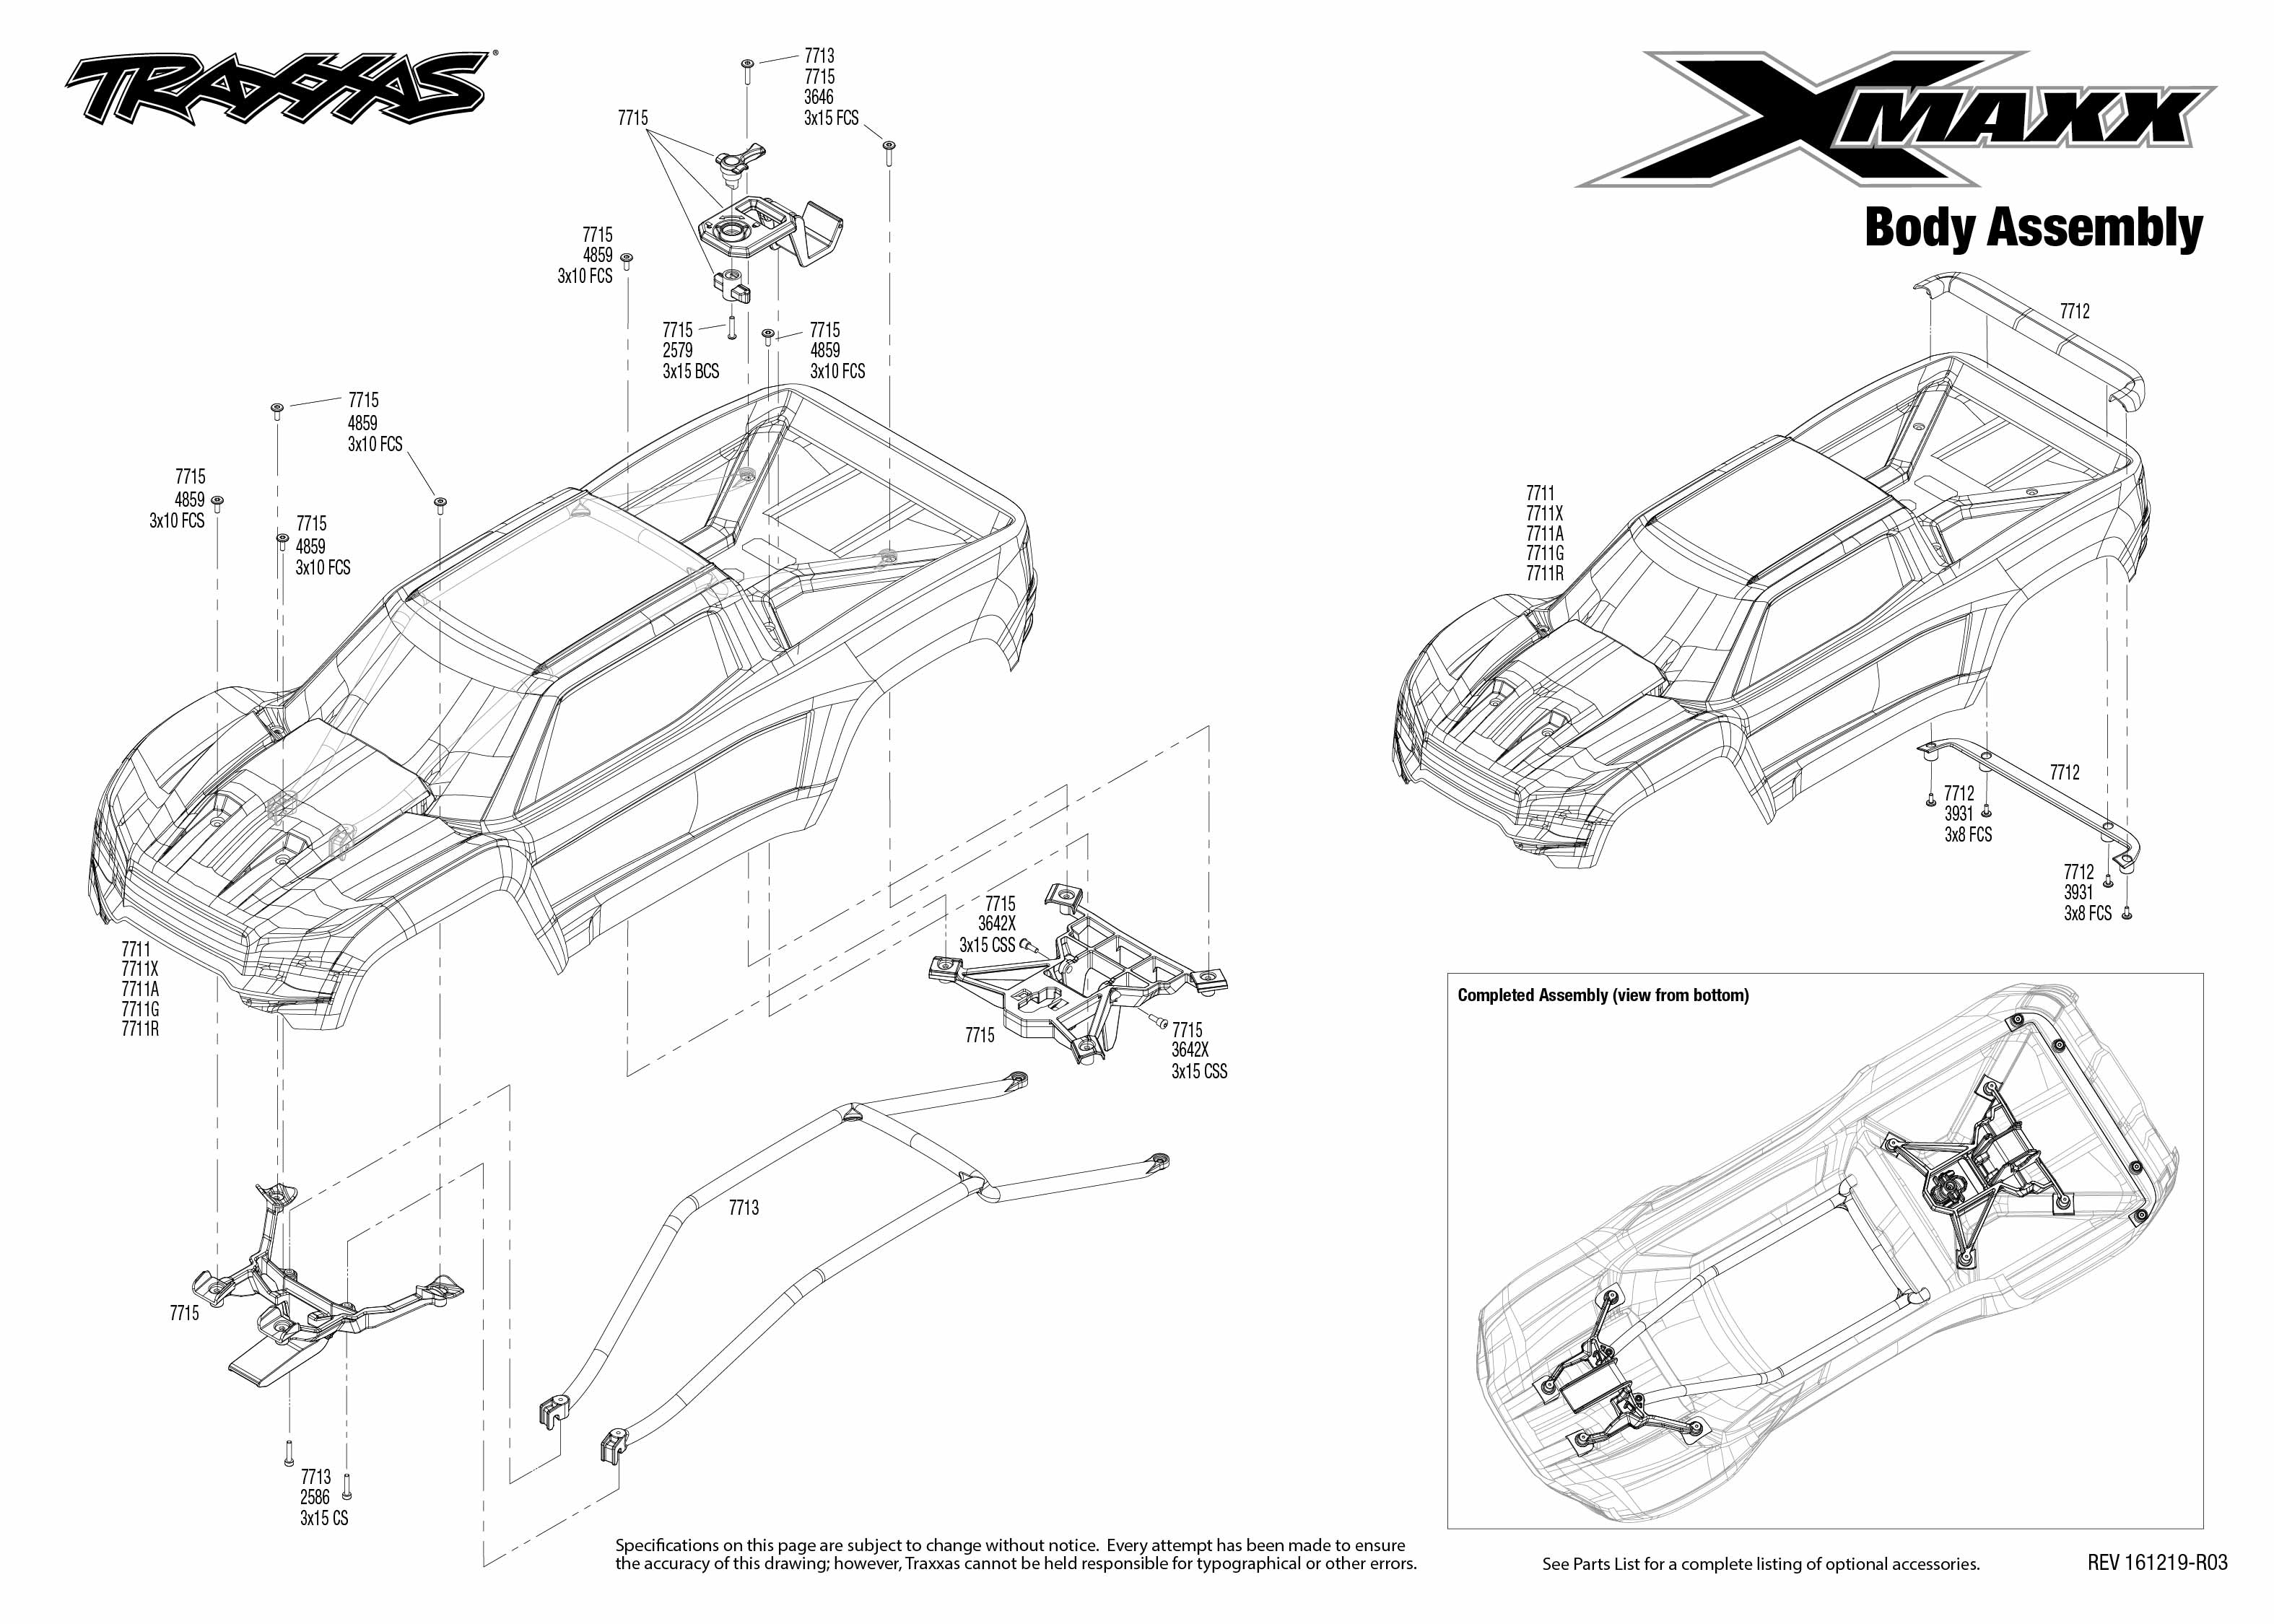 Exploded view: Traxxas X-Maxx 1:5 8S 4WD TQi Brushless TSM